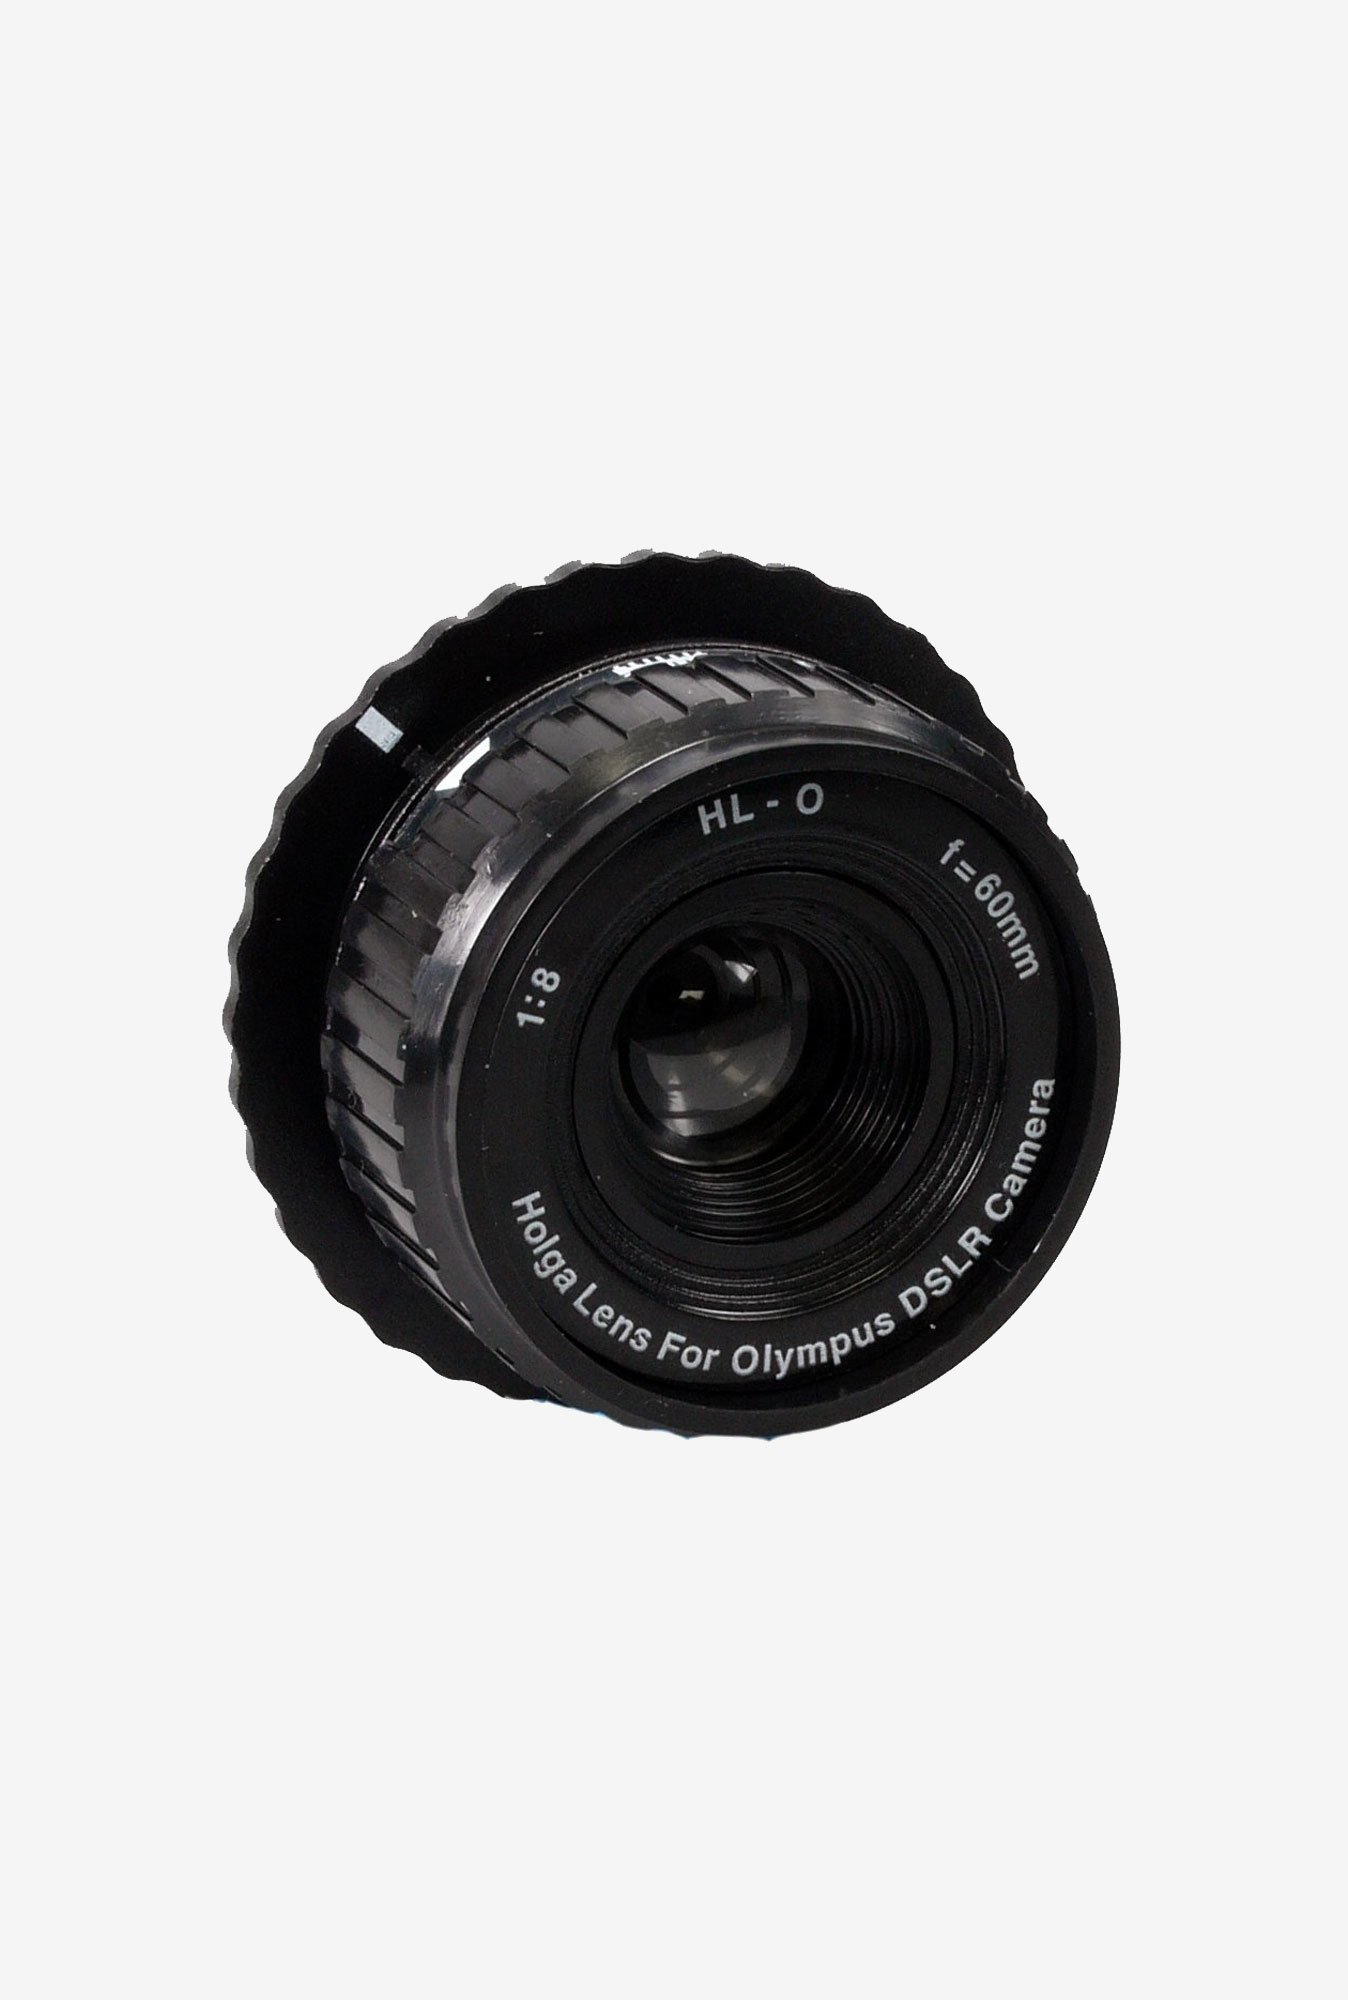 Holga 315120 60mm Holga Lens for Olympus DSLR Camera (Black)